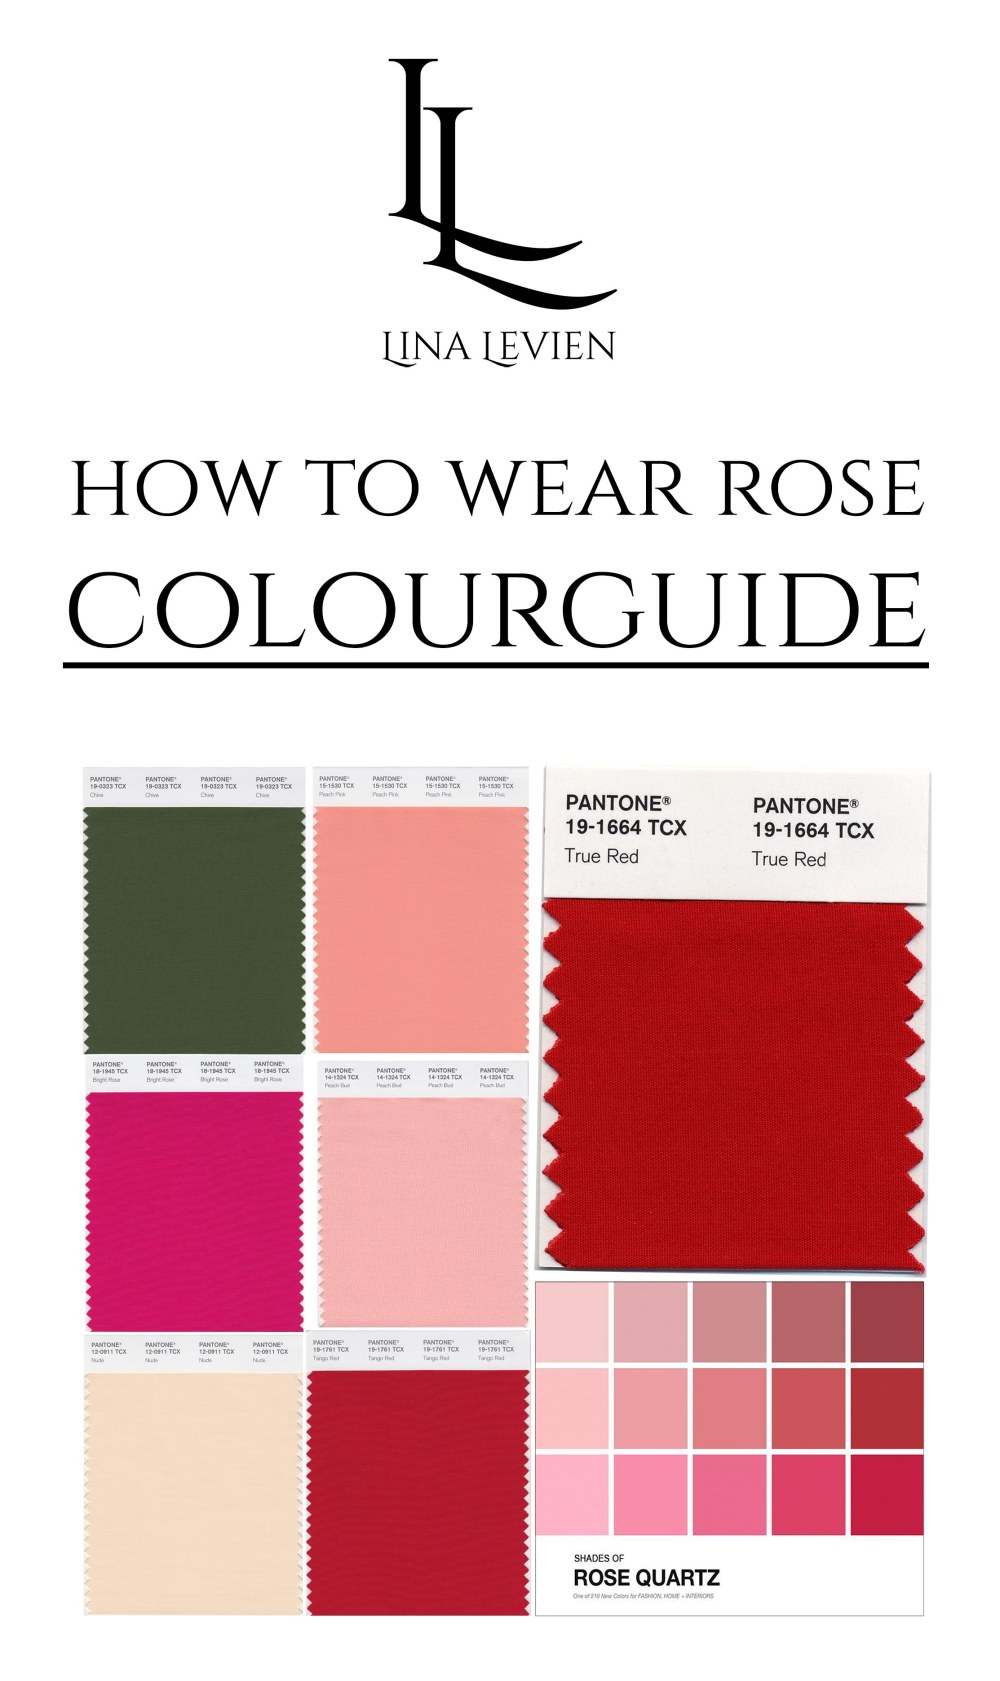 lina-levien-my-mode-how-to-wear-rose-colourguide